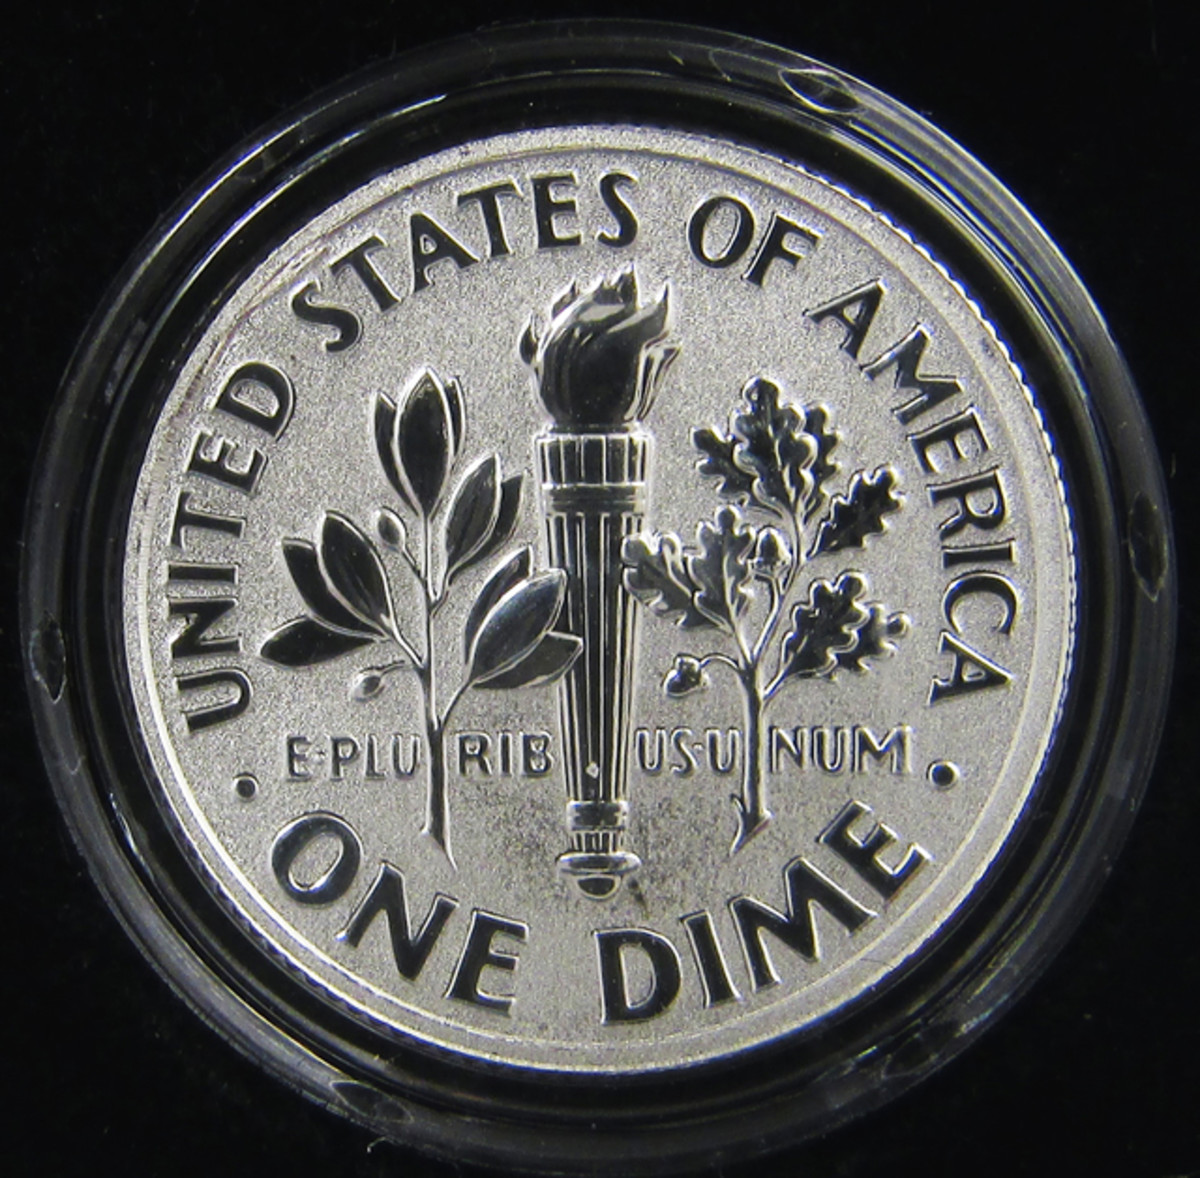 The reverse proof dime has mirrored design devices and frosted fields.